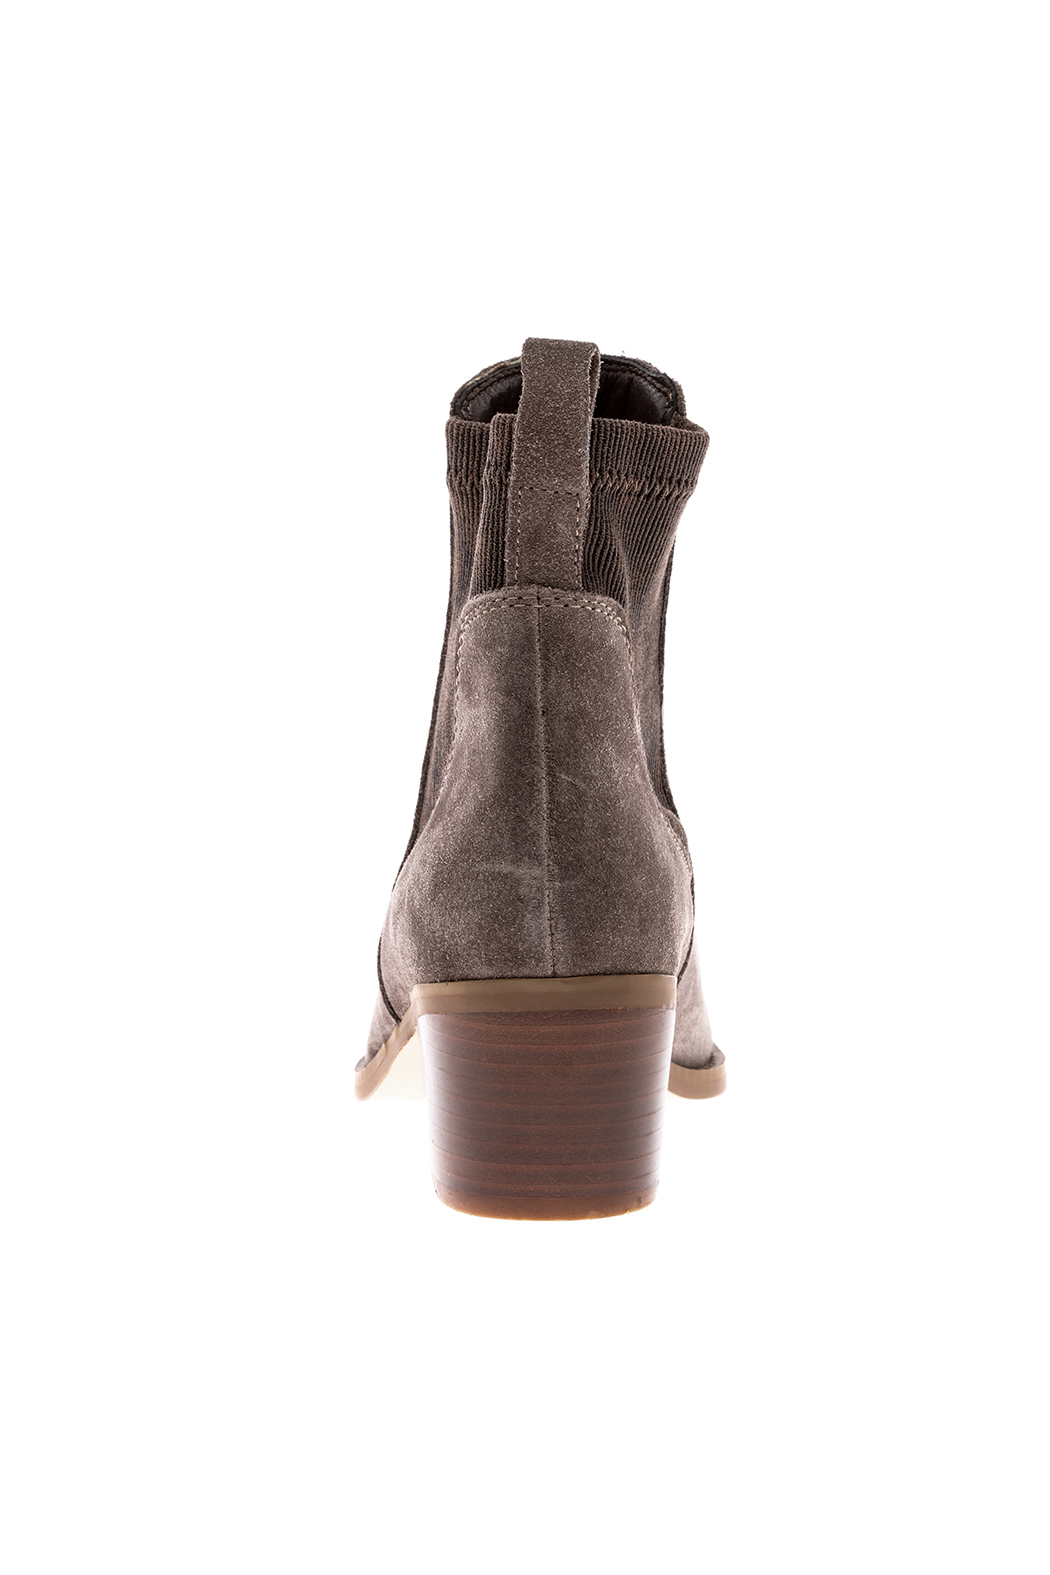 Very Volatile Chelase Style Suede Bootie - Front Full Image